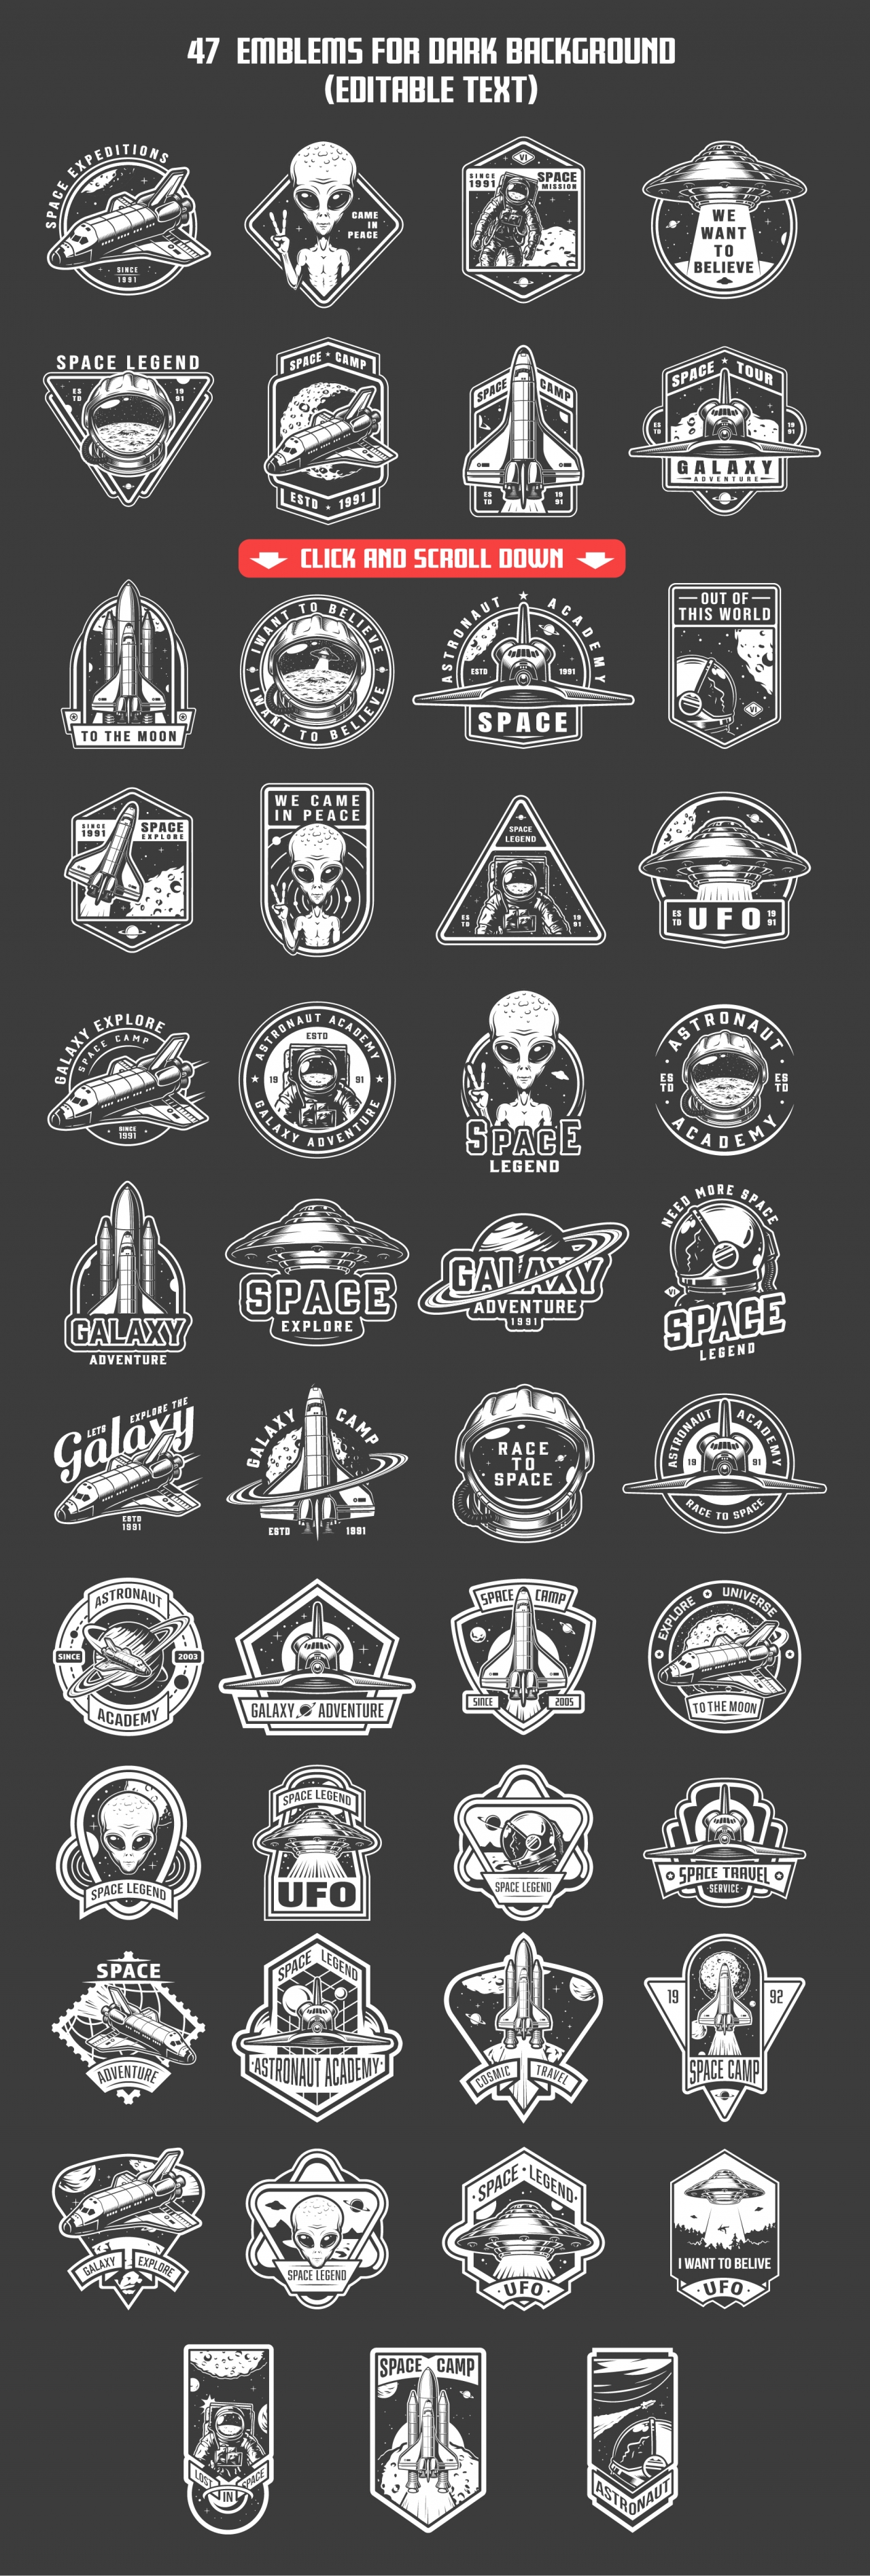 47 white space patches, designs, and badges on black background. Collection of vector art with astronaut, shuttle and alien. Editable text, EPS, JPG, PDF, PSD, AI, PNG files.